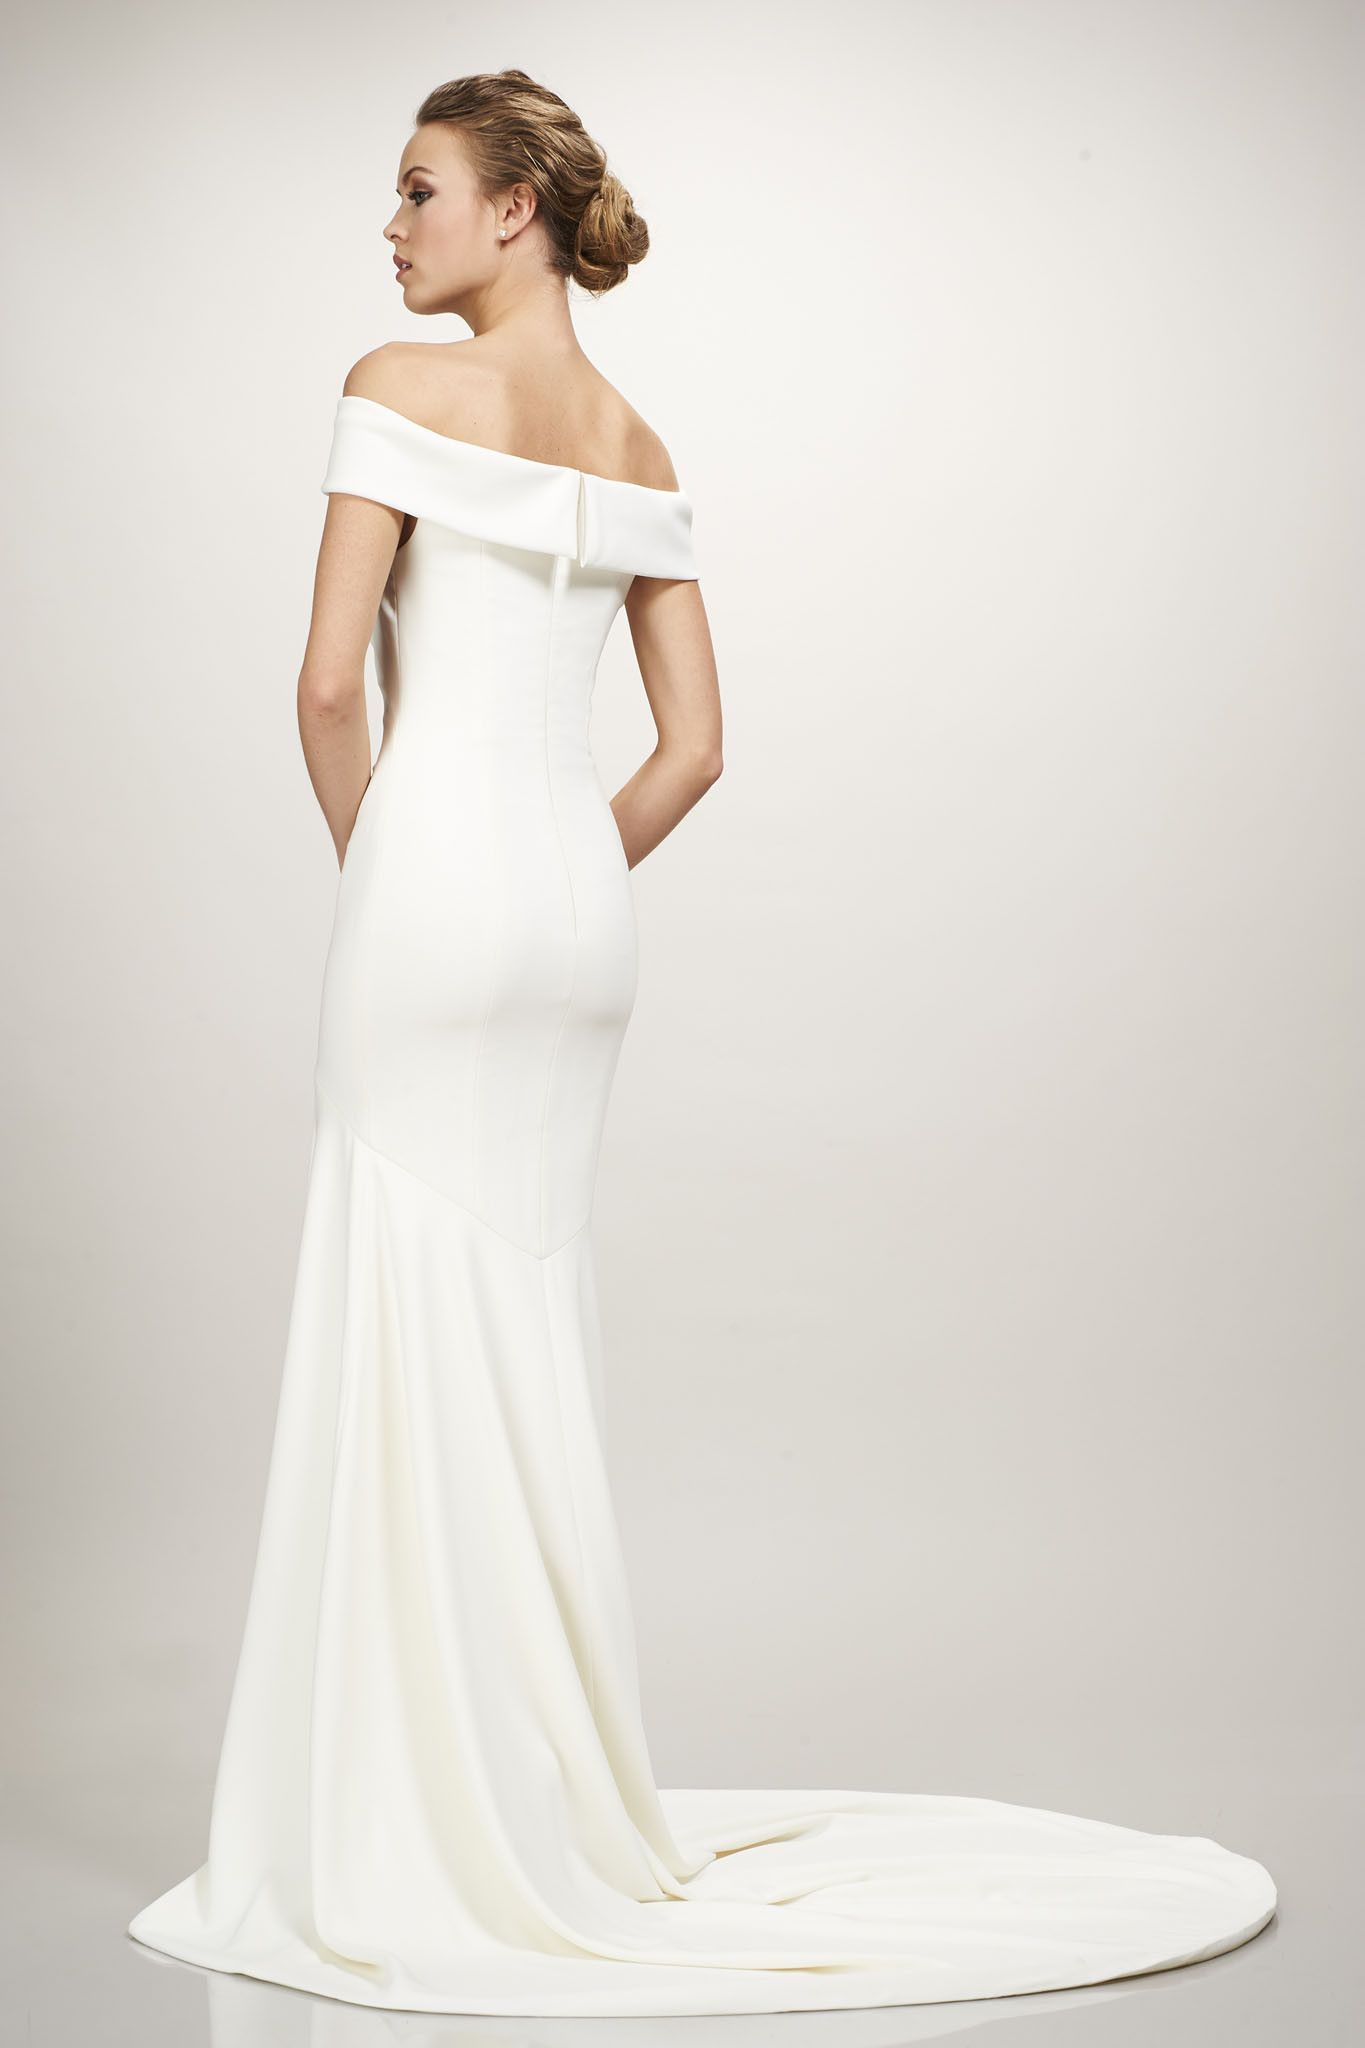 Eve by Theia Couture available at The Bridal